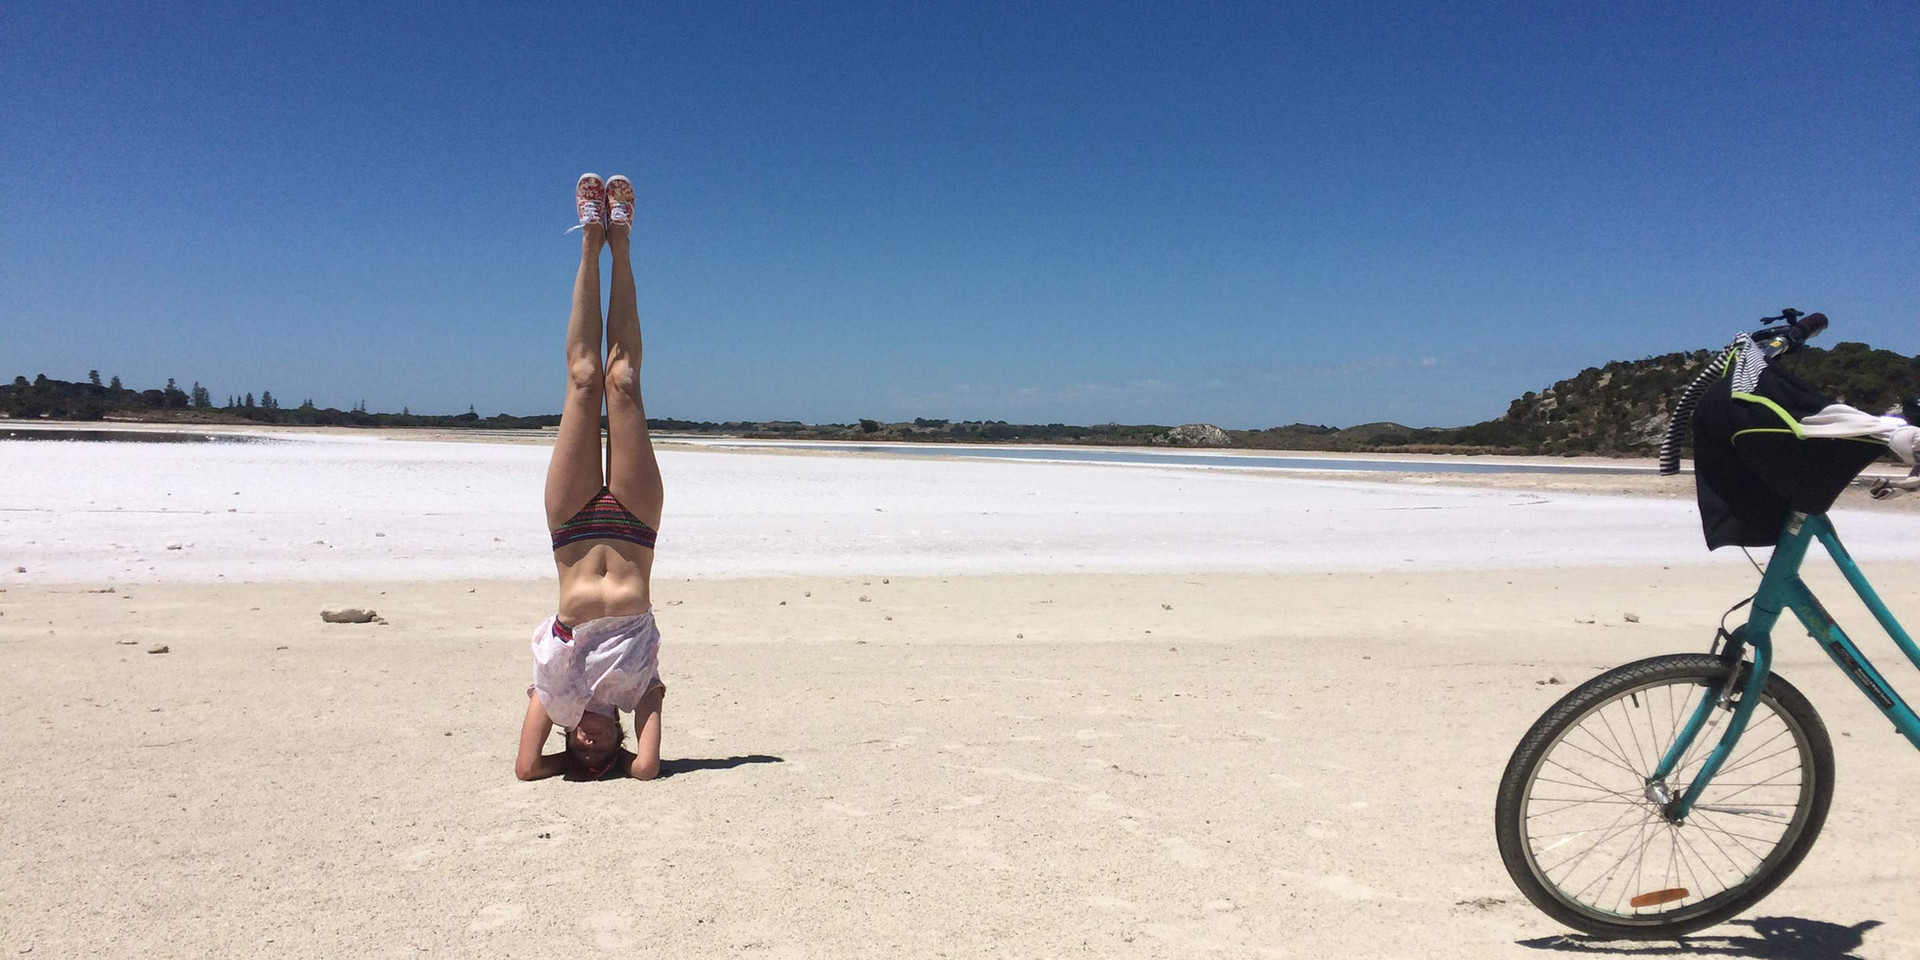 Headstands at Rottnest Island